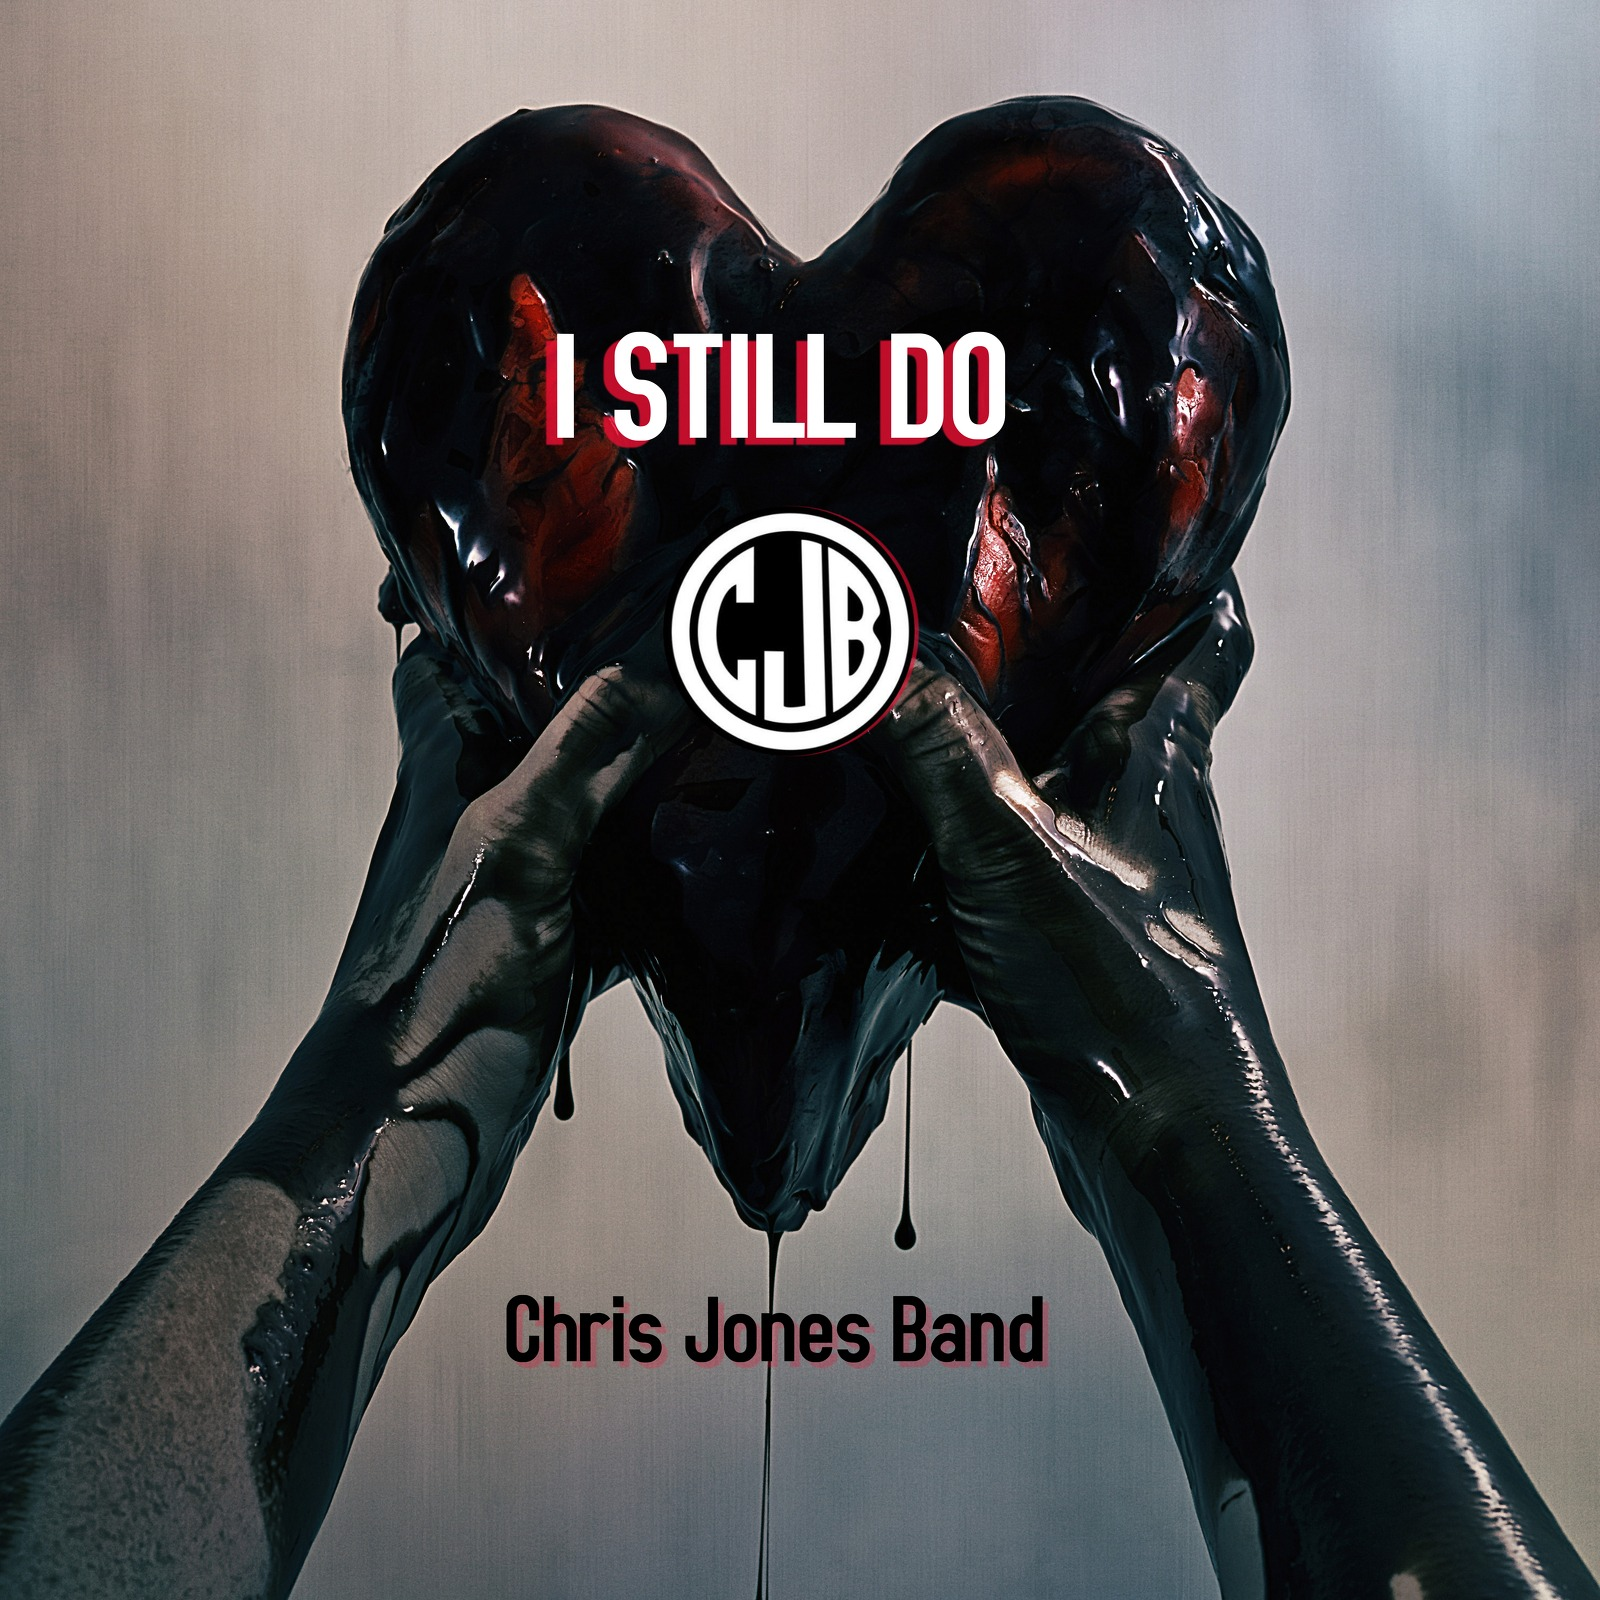 CHRIS JONES BAND